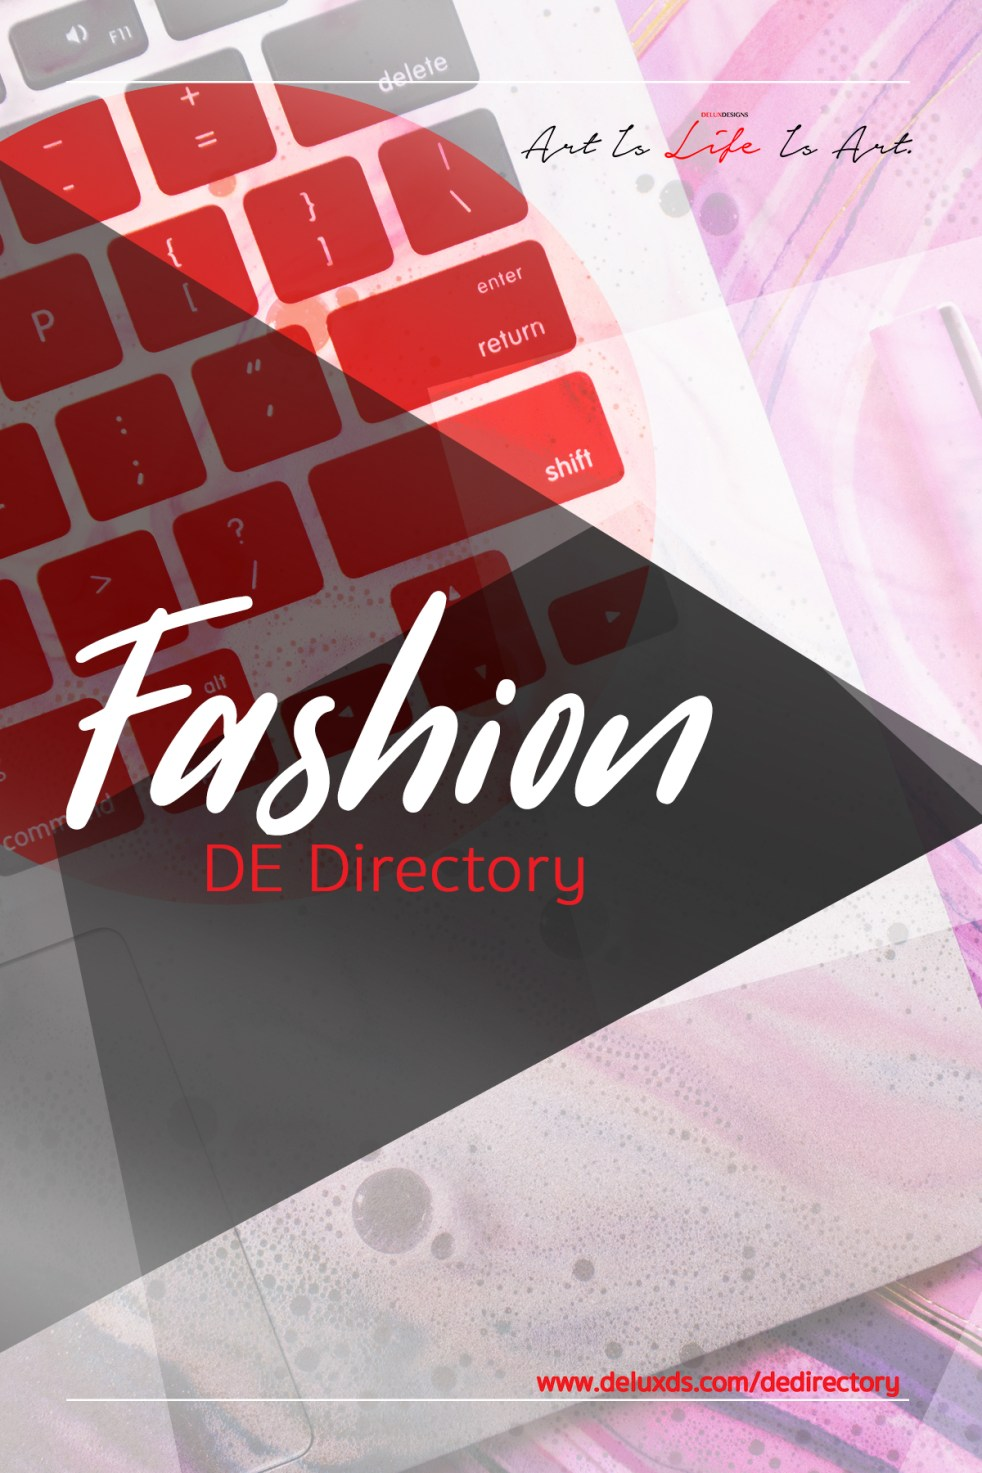 DE Directory - Fashion Pinterest